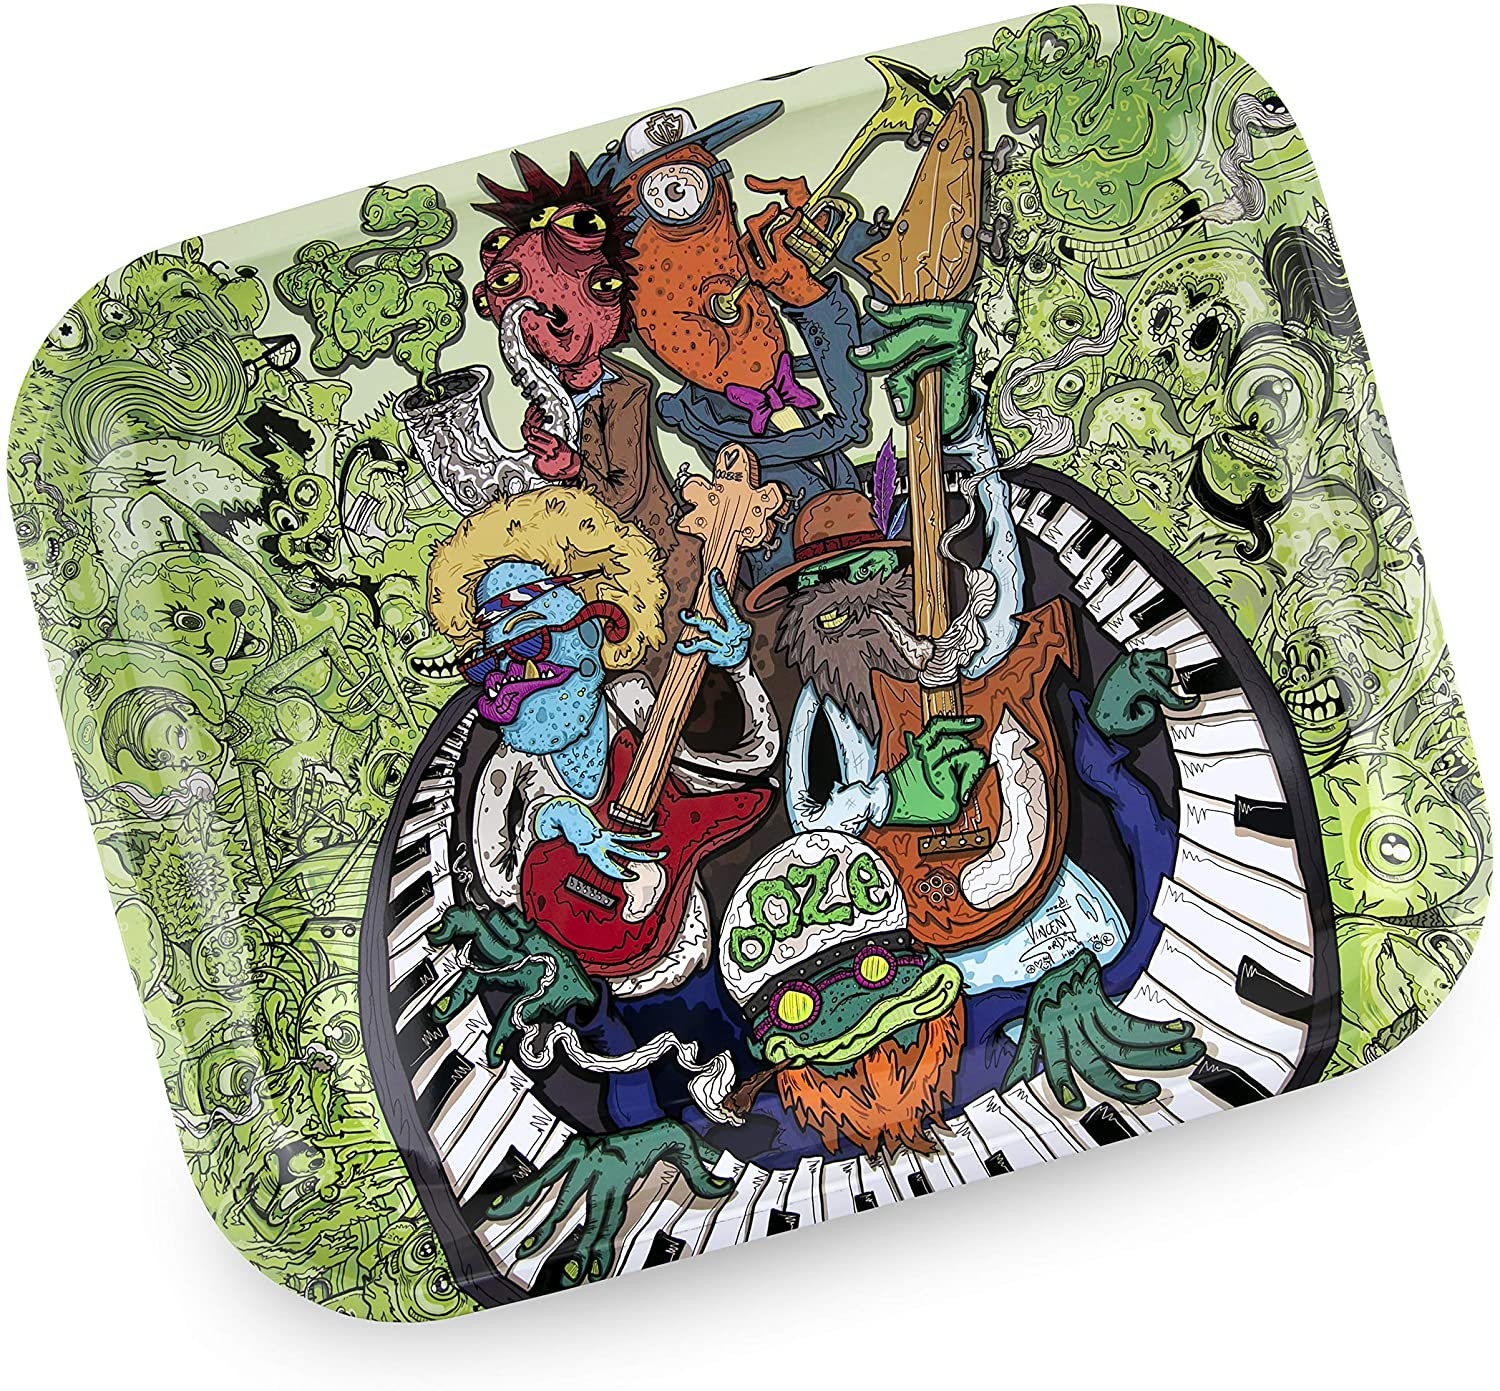 Ooze Premium Metal Rolling Tray - (The Band Jam) - Large - 14